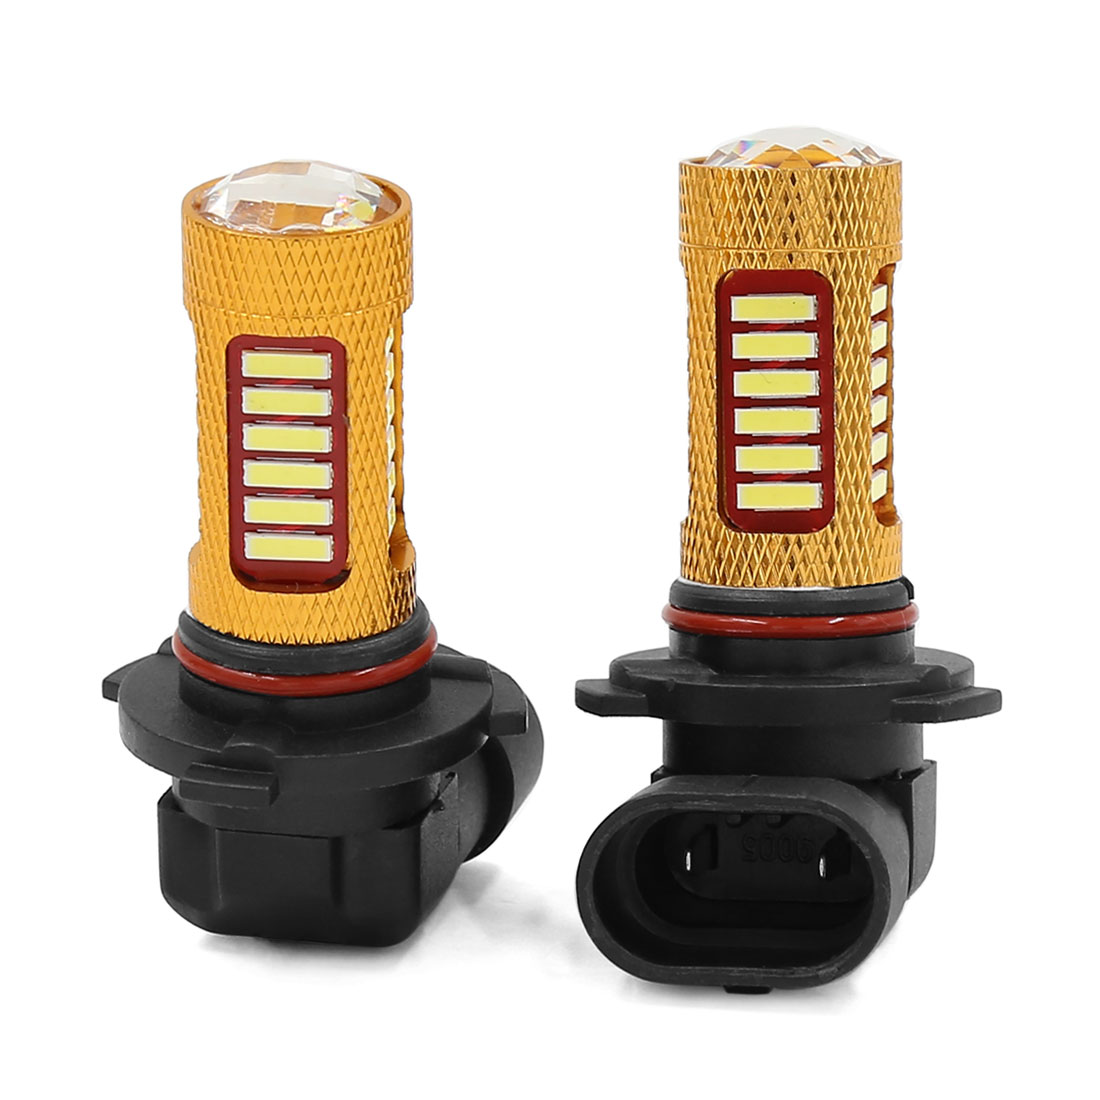 2 Pcs 9006 HB4 9012 White 27 SMD LED DRL Fog Head Light Lamp Blub for Auto car